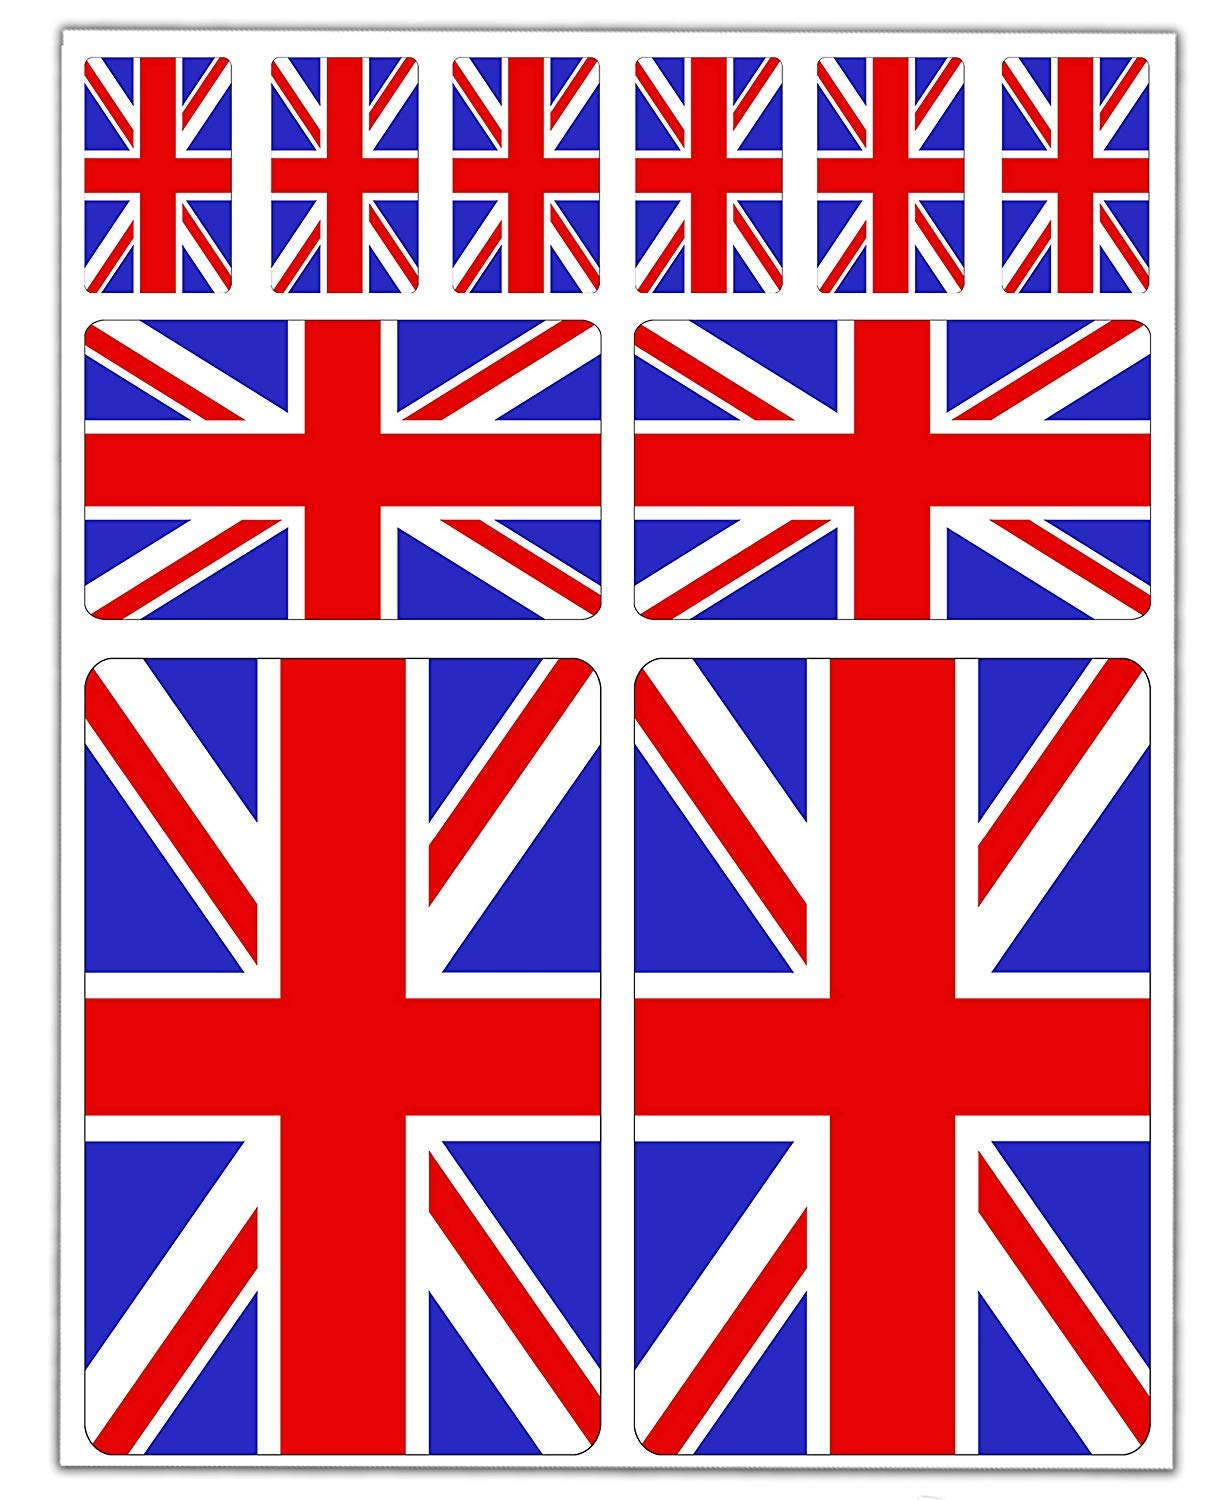 10 x Vinyl Stickers Set Decals UK Union Jack National Great Britain Flag Car Motorcycle Helmet D 24